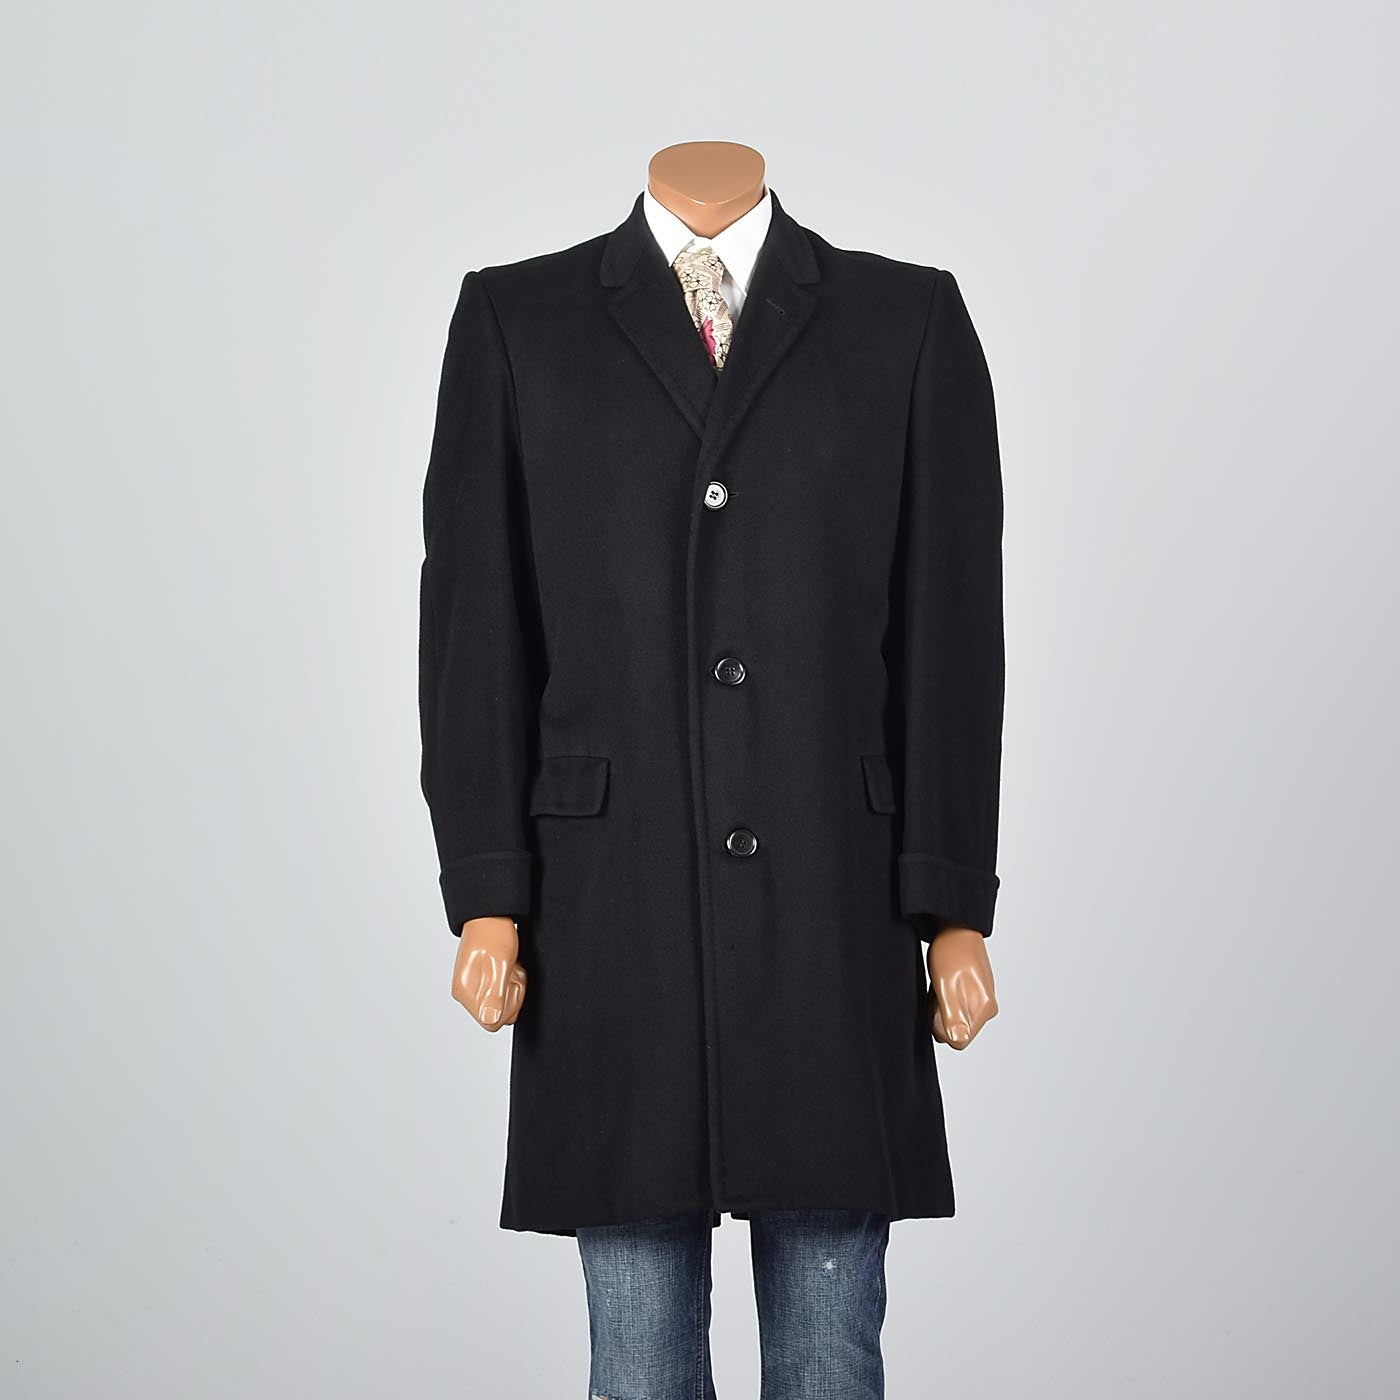 1950s Men's Black Cashmere Coat by Kuppenheimer